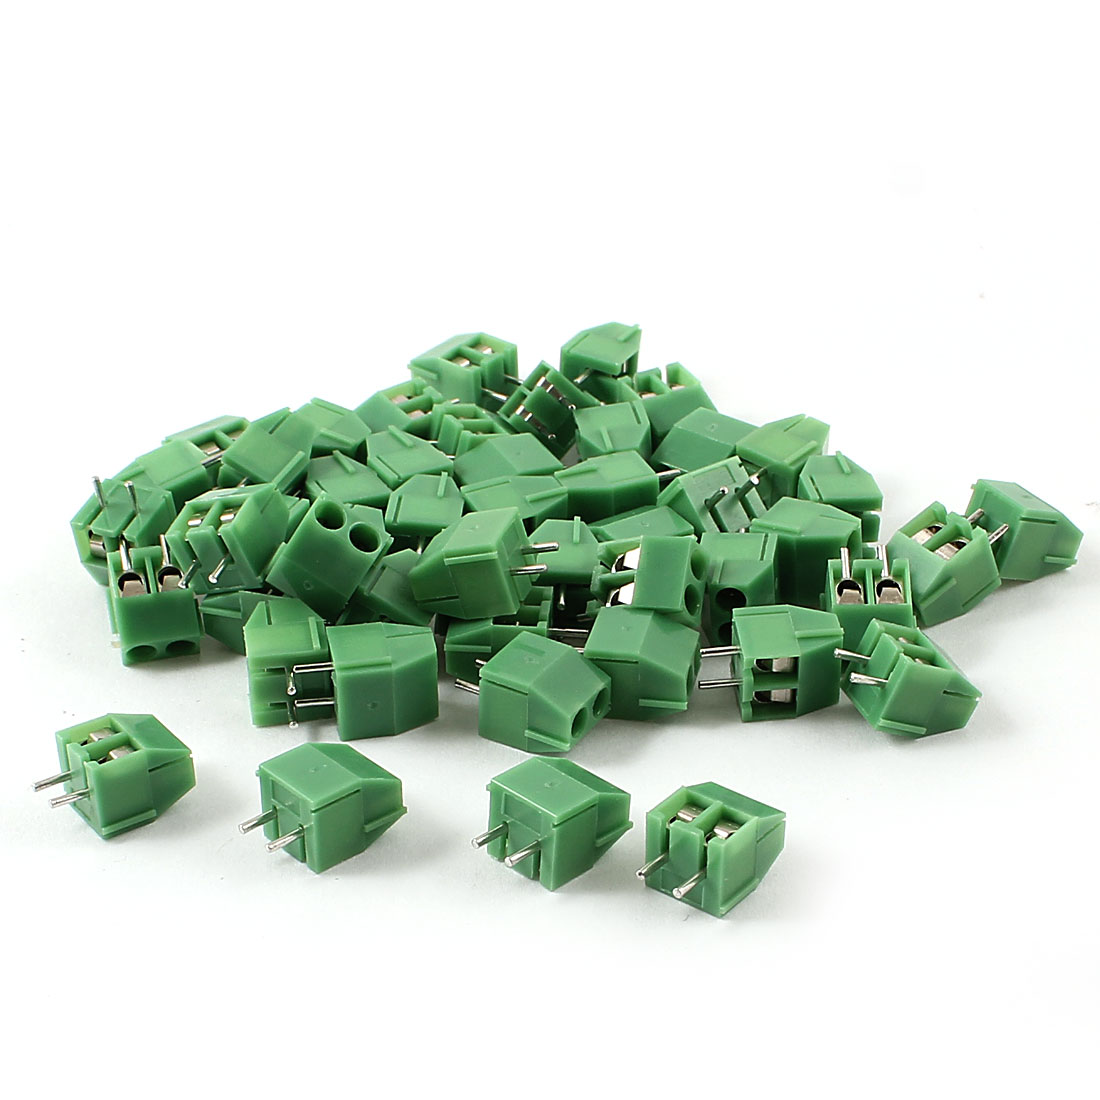 50pcs Straight 3.5mm Pitch Spacing PCB Board Mount Type Screw Terminal Blocks Connectors Green